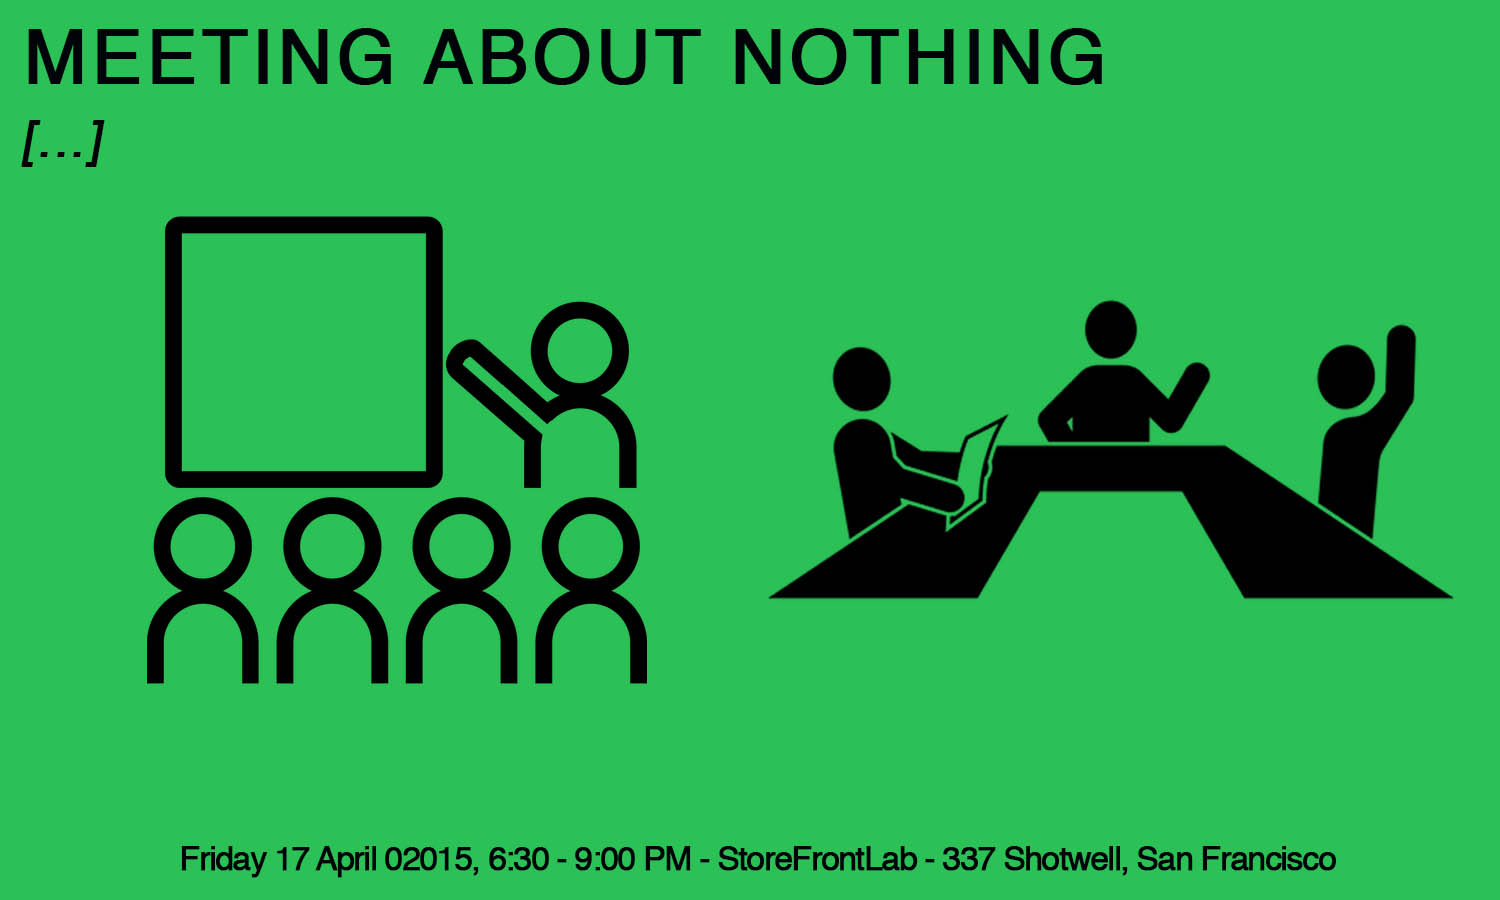 meeting about nothing.jpg